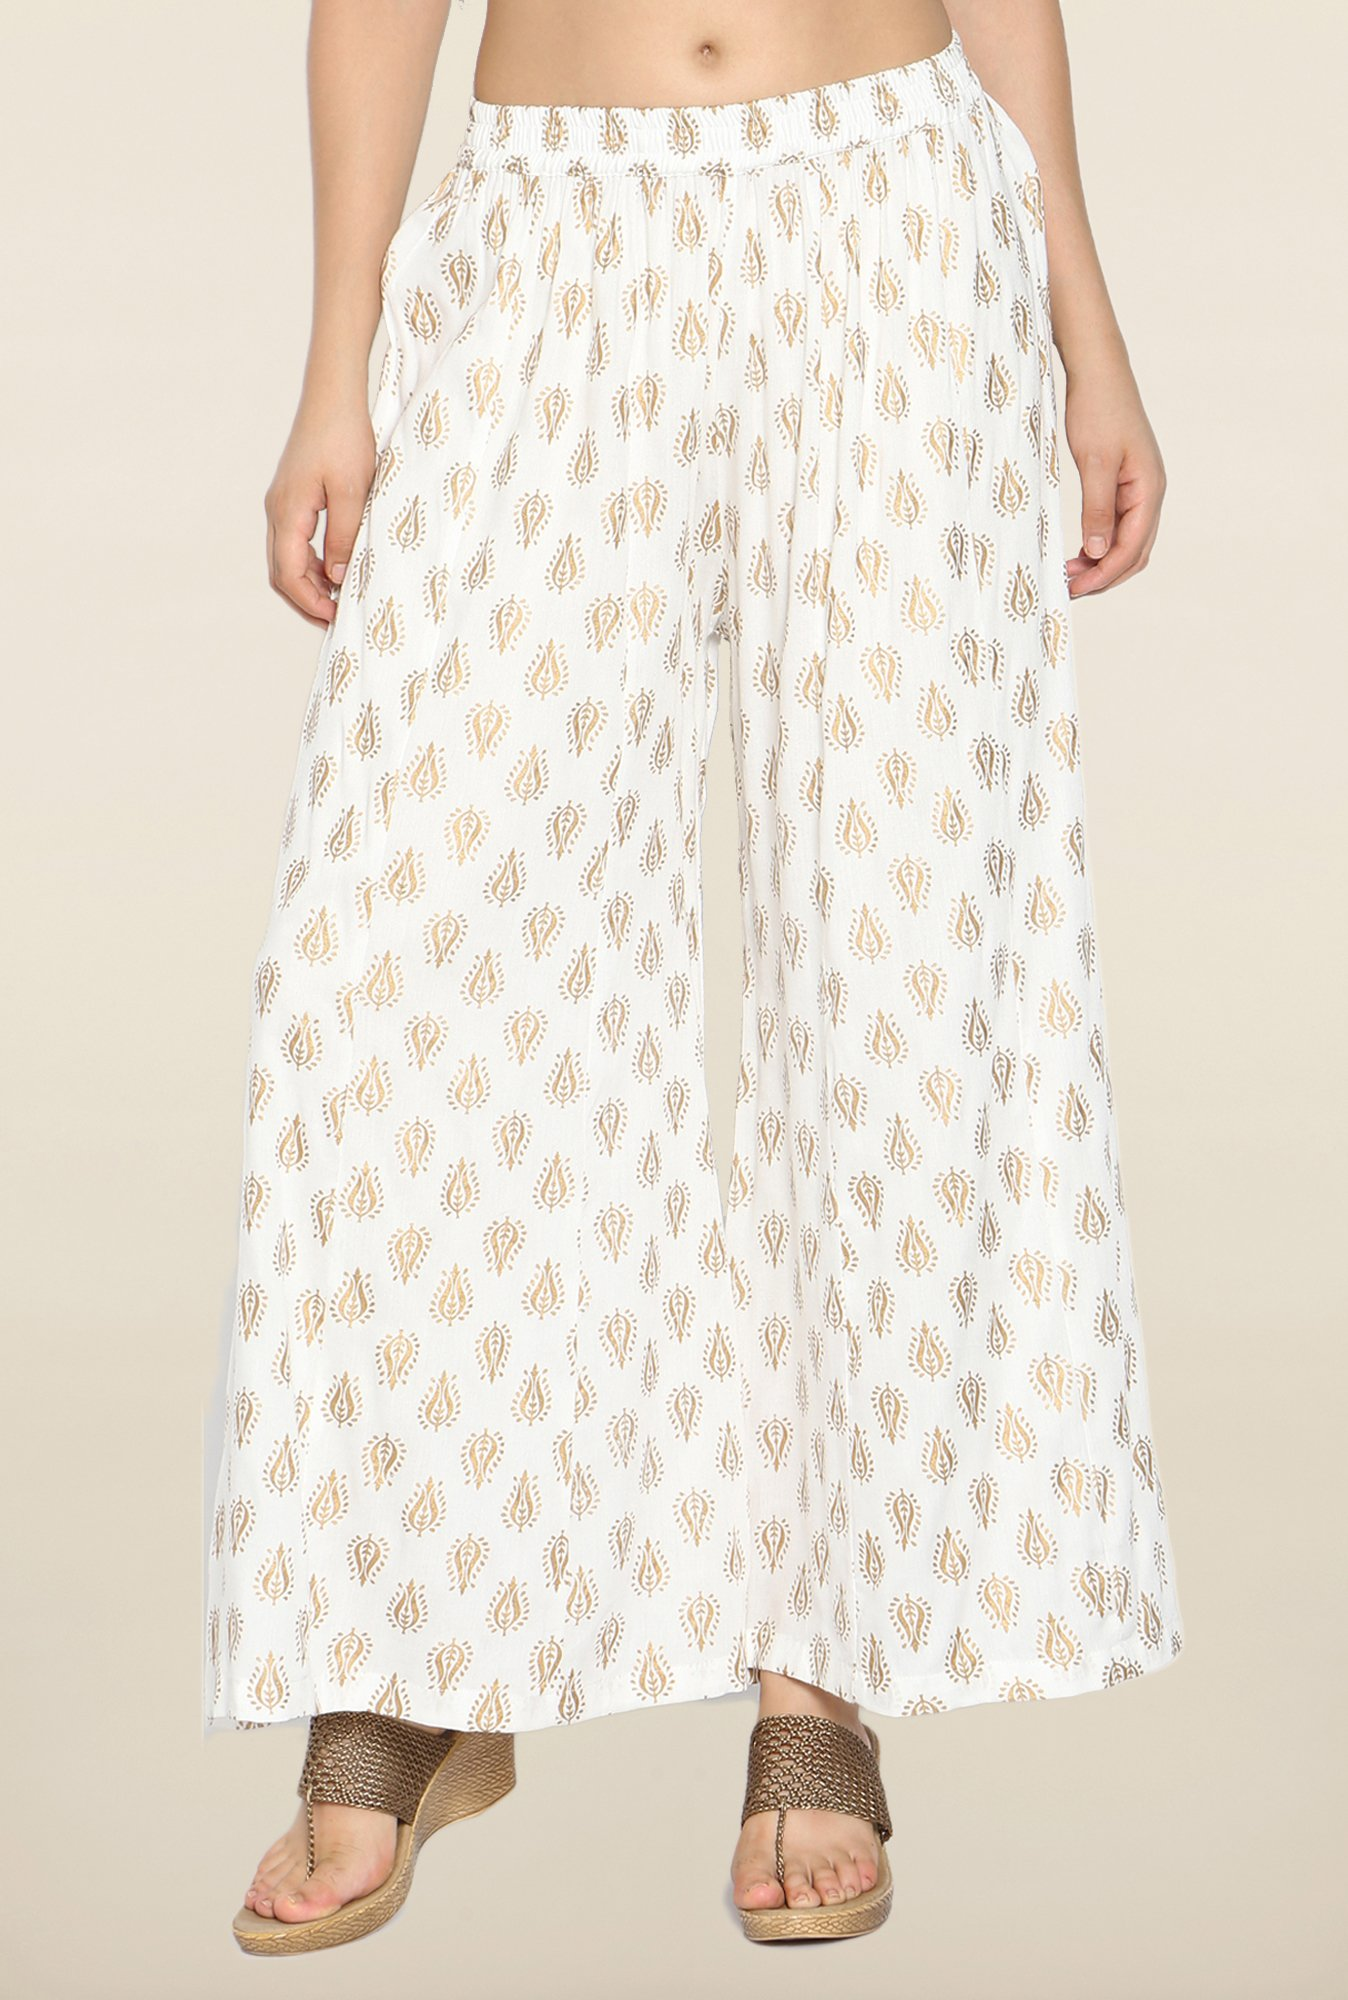 Soch Off White Printed Palazzo